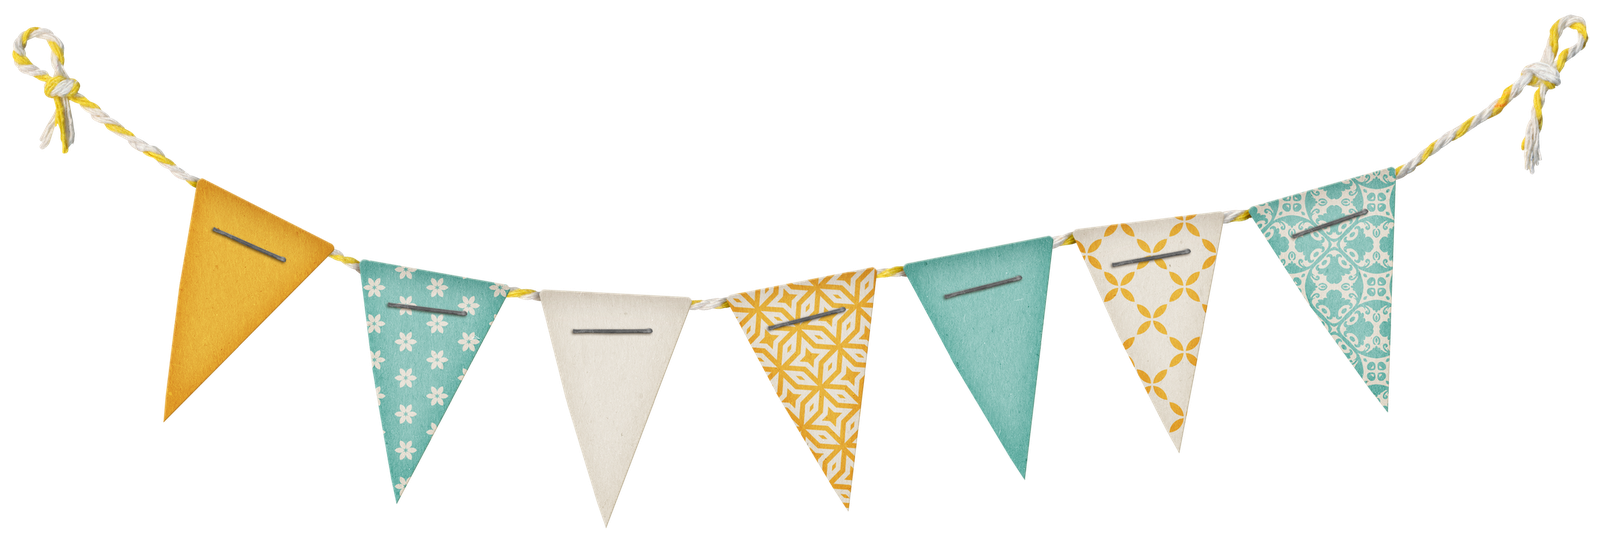 Party banner google search. Garland clipart flag